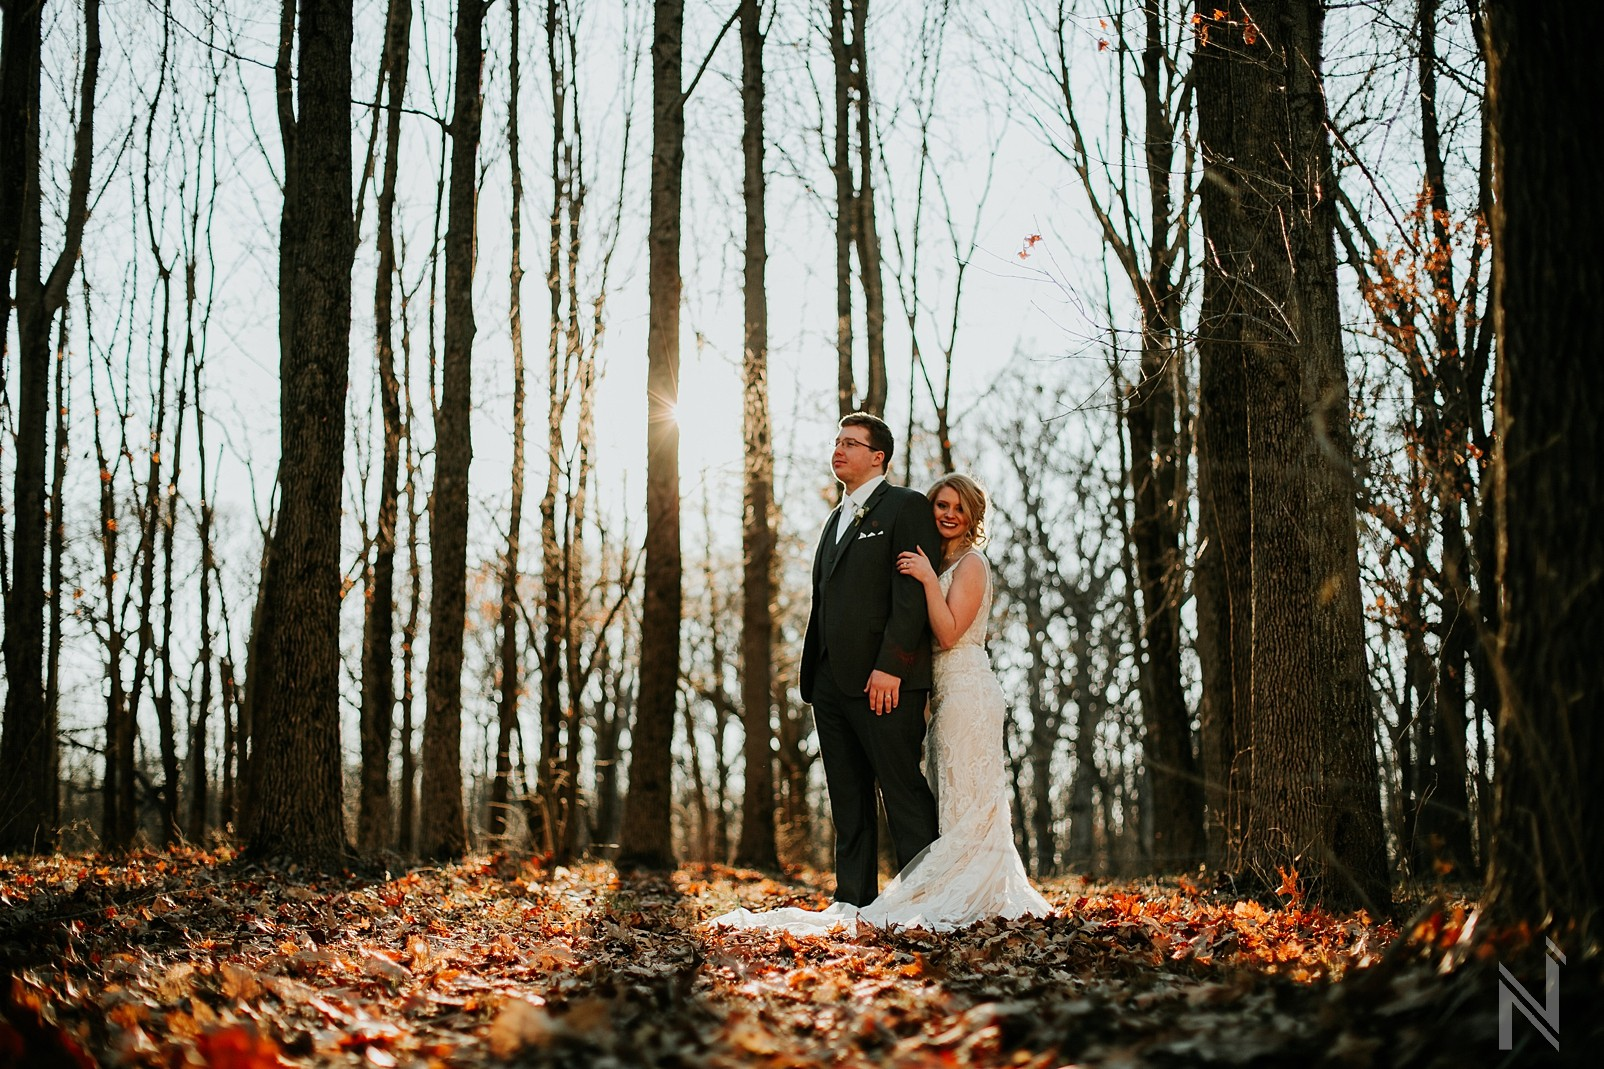 ILLINOIS-WEDDING-PHOTOGRAPHY-BOHEMIAN-SILVER-LAKE-PARK-NORTH-ARROW-CREATIVE_0342